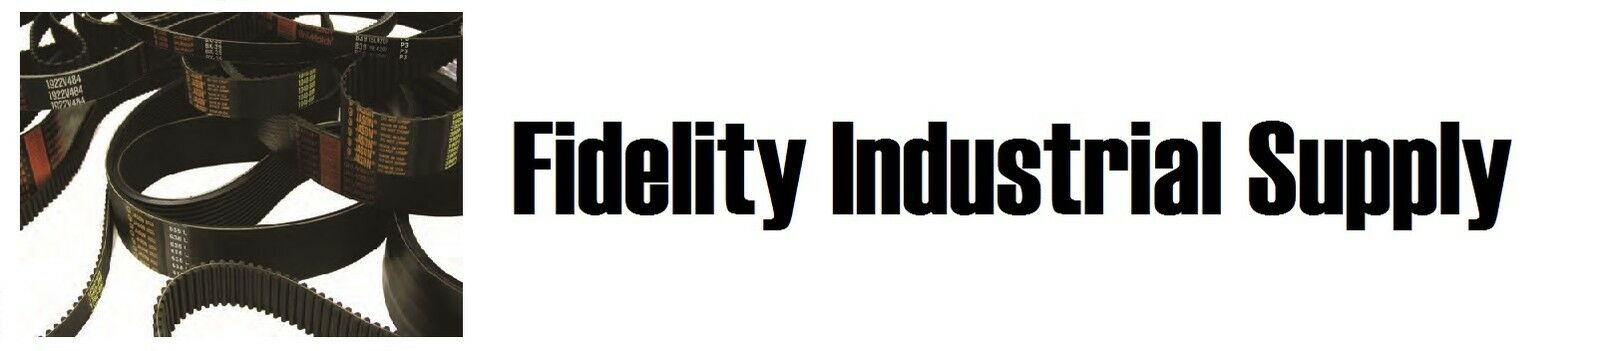 Fidelity Industrial Supply